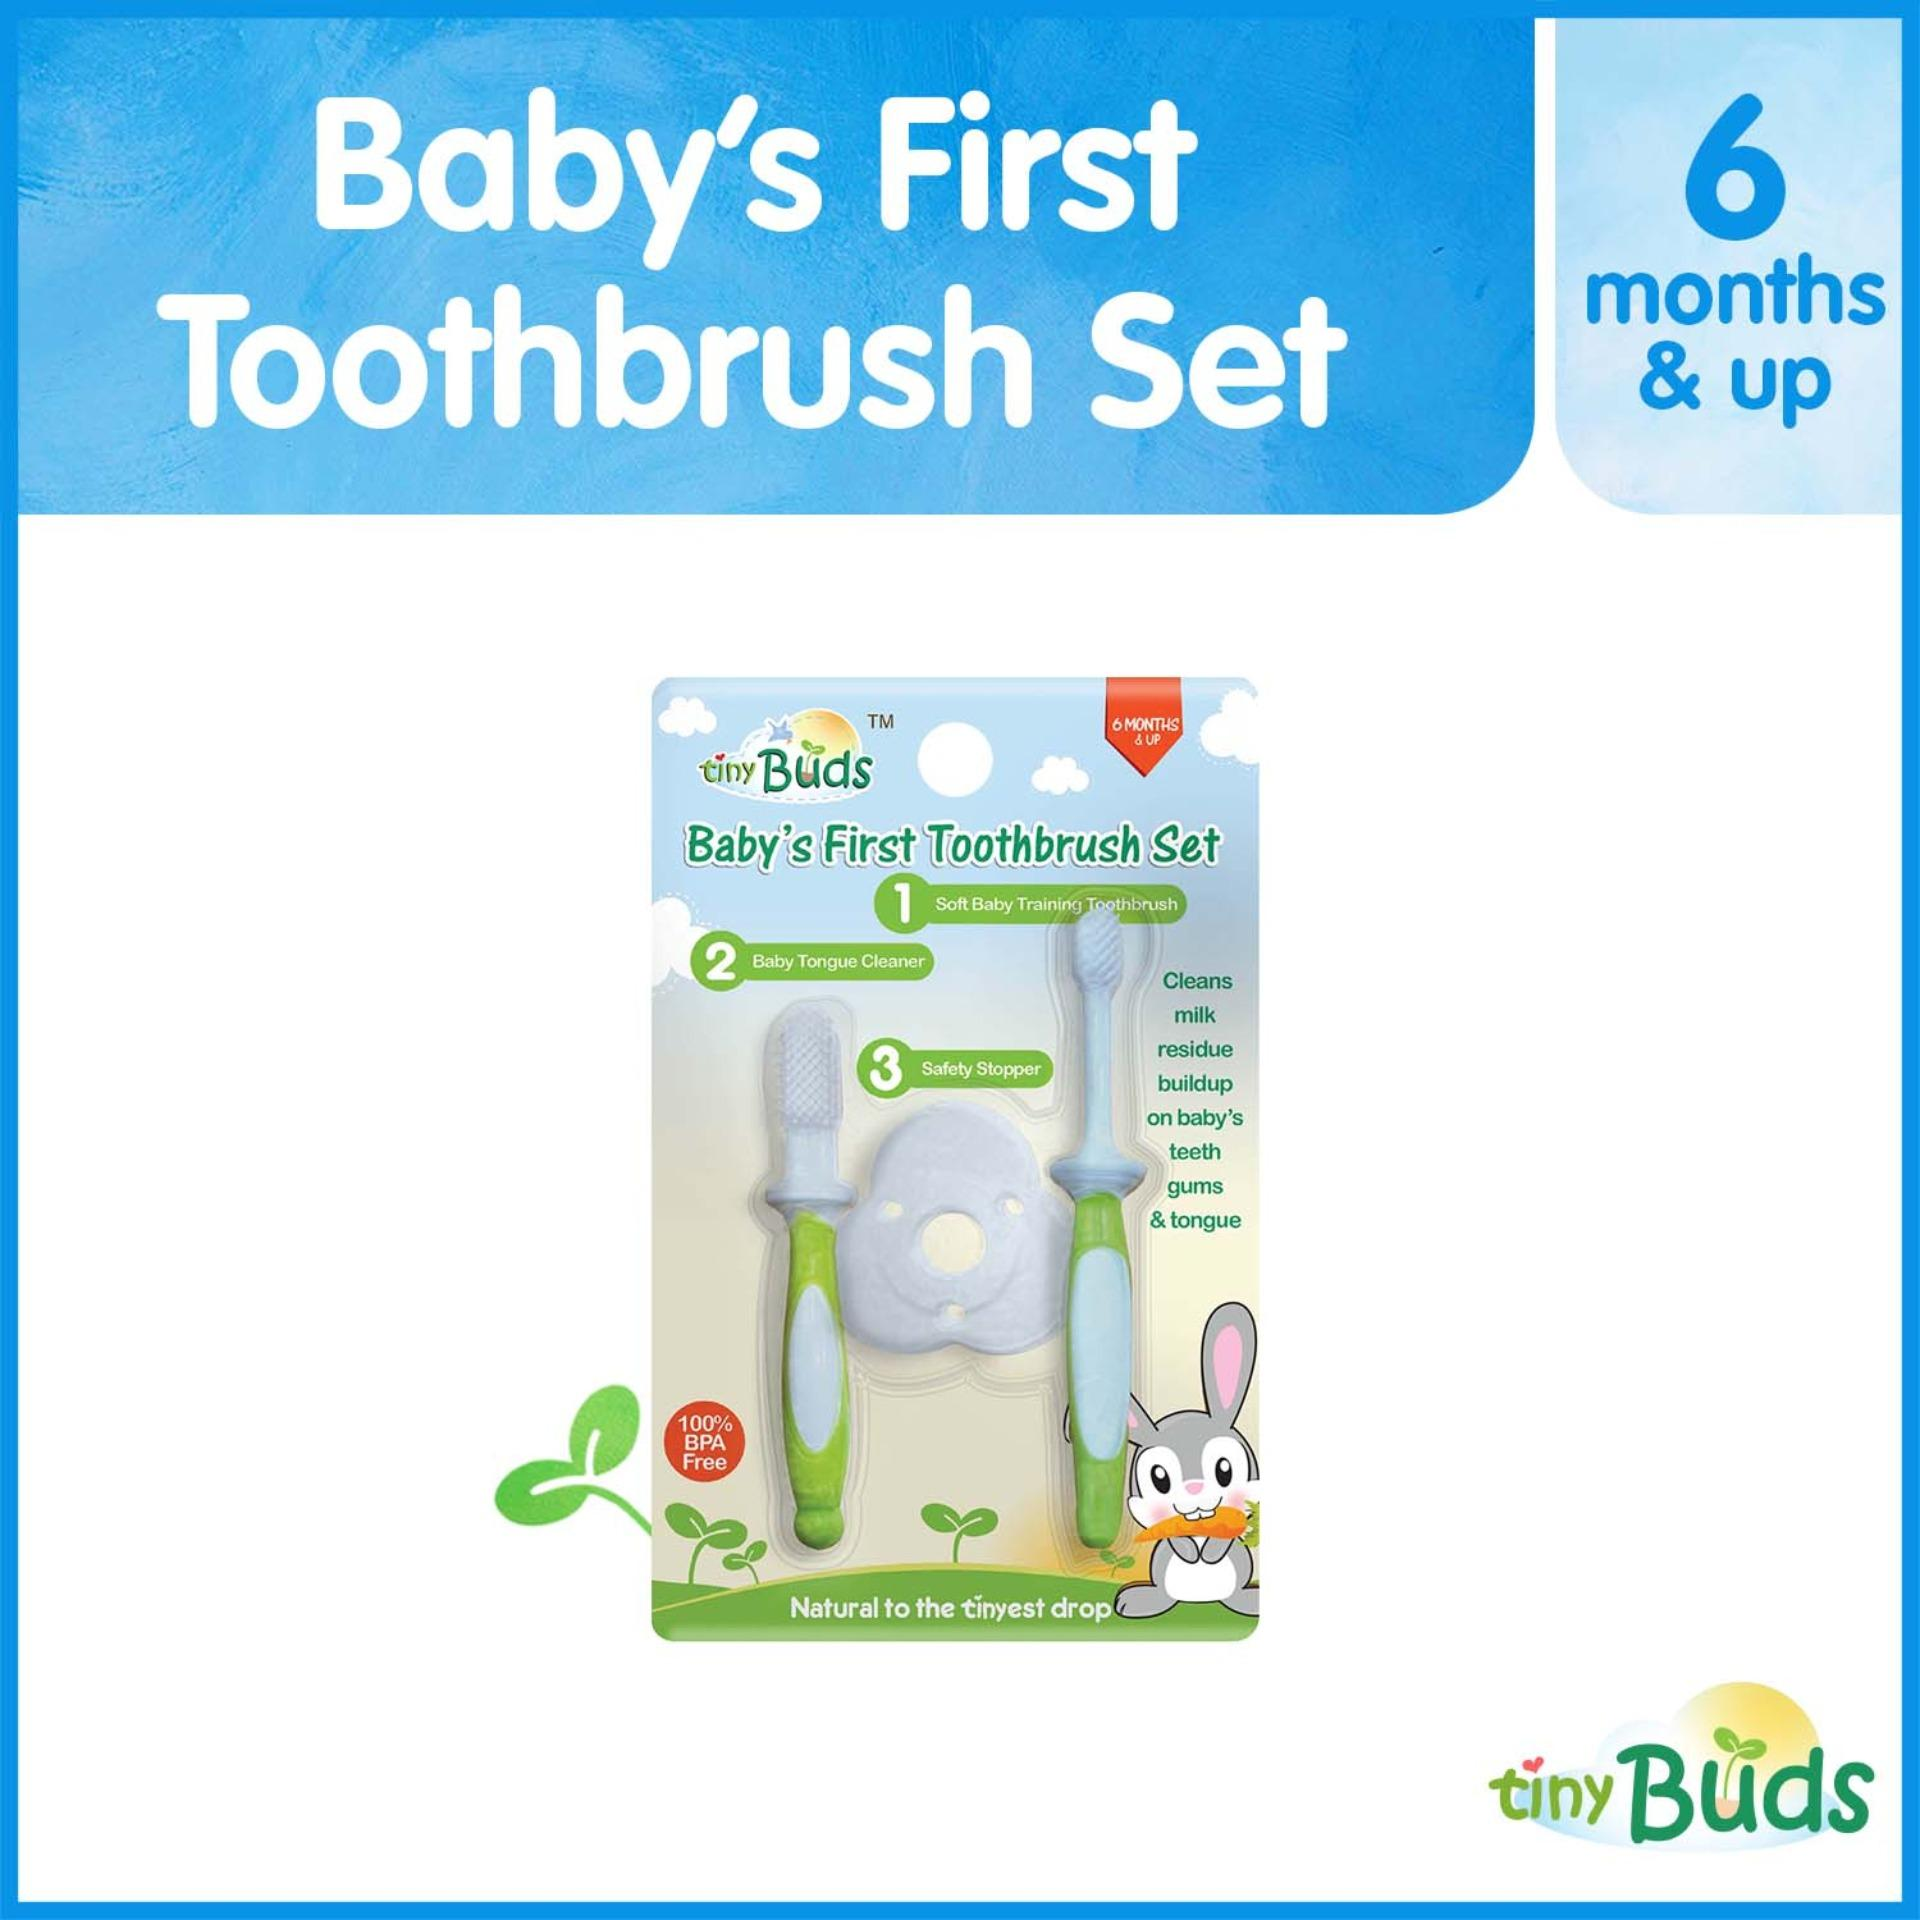 Buy Sell Cheapest Chicco Baby Toothpaste Best Quality Product 360do Tooth Brush For White Tiny Buds Babys First Toothbrush Tongue Cleaner Set 6 Months